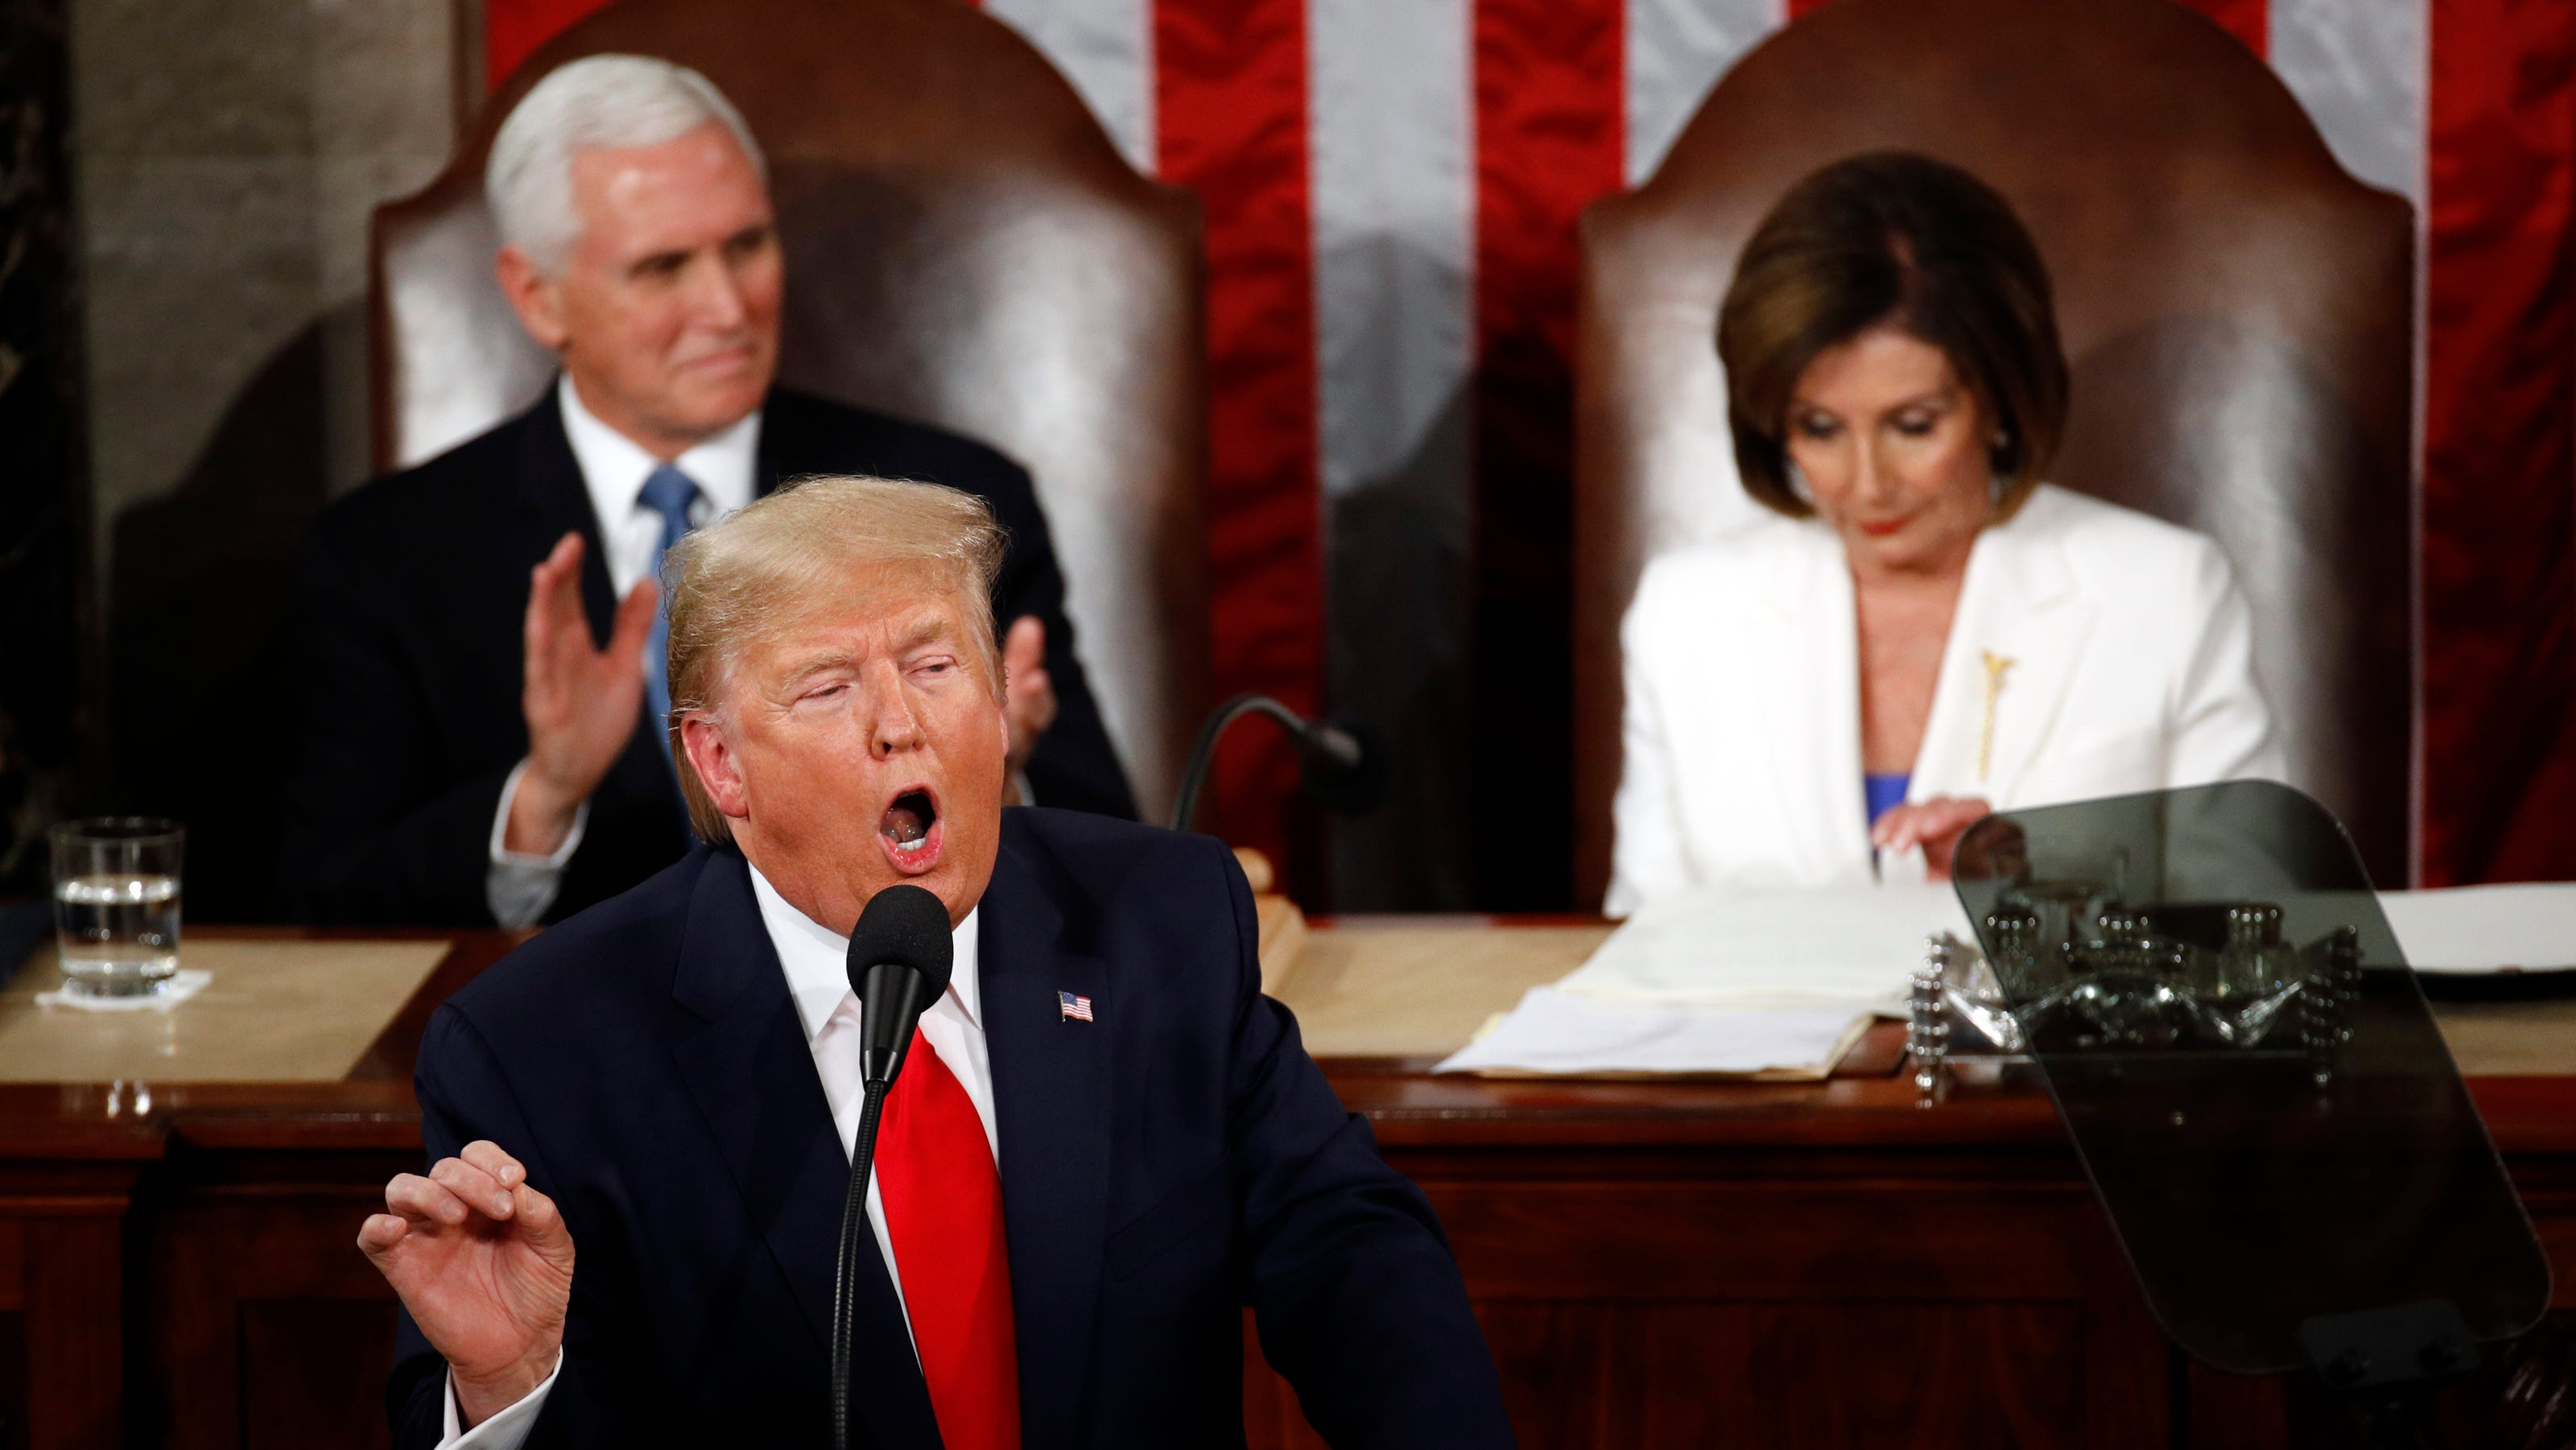 In hottest decade on record, climate change appears nowhere in State of the Union address